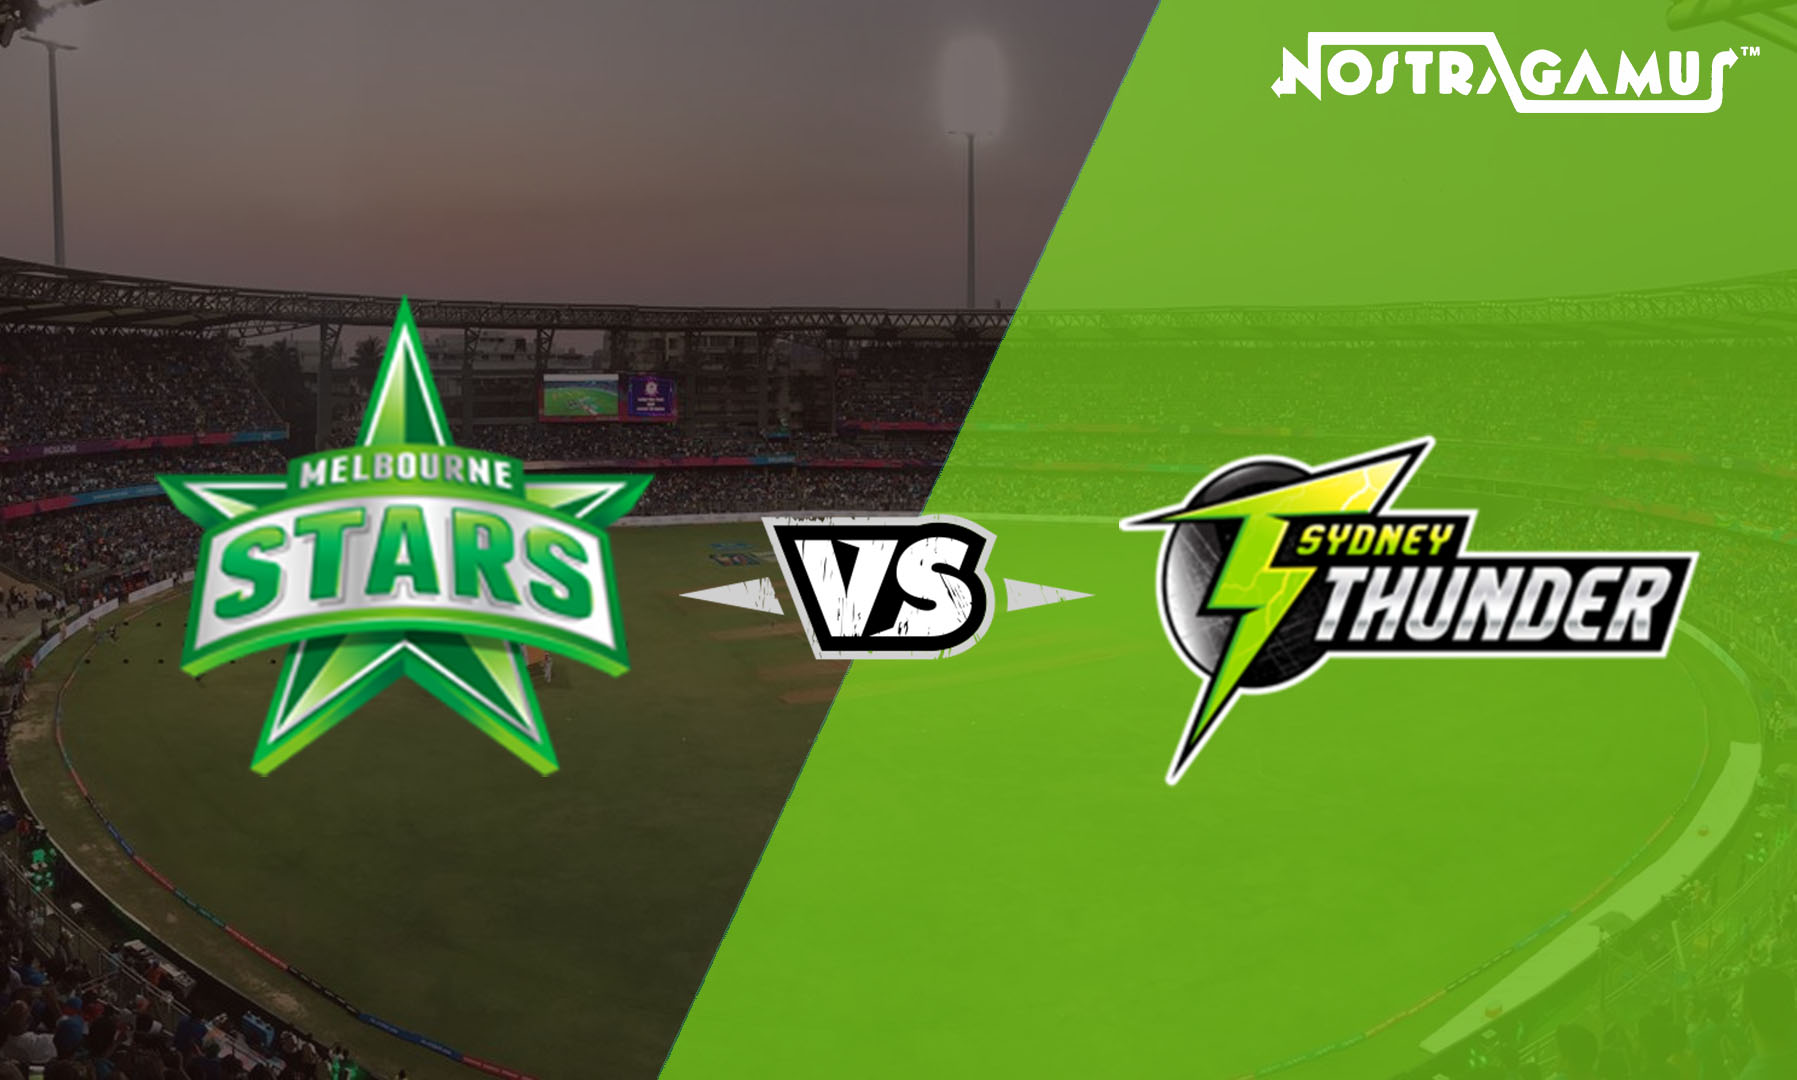 Sydney Thunder vs Melbourne Stars: BBL 2019 Match Prediction